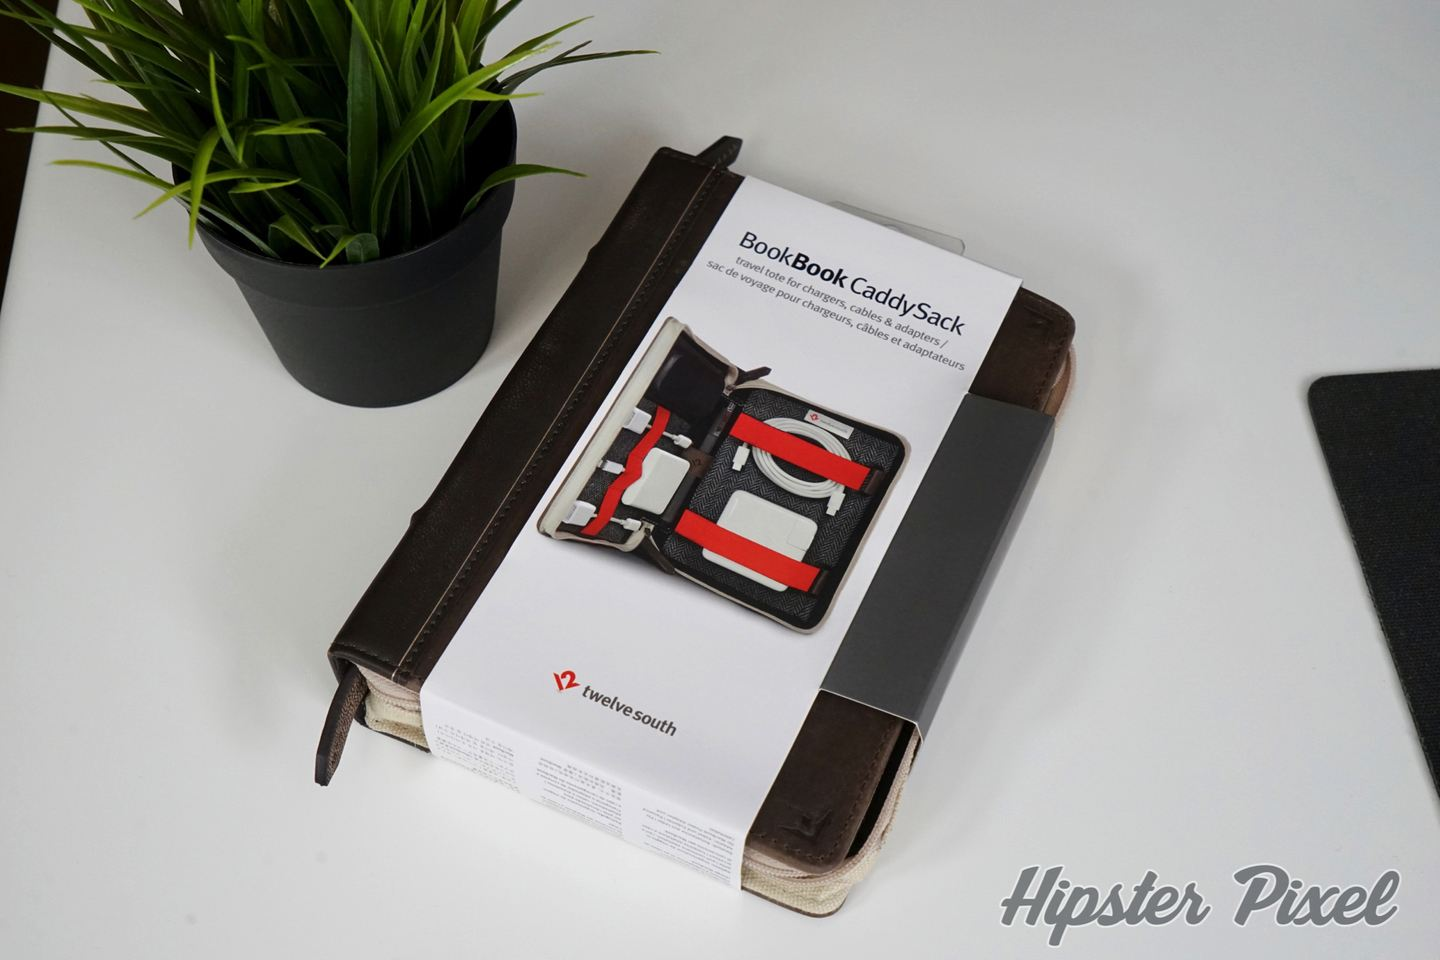 Bookbook CaddySack by Twelve South [Review]